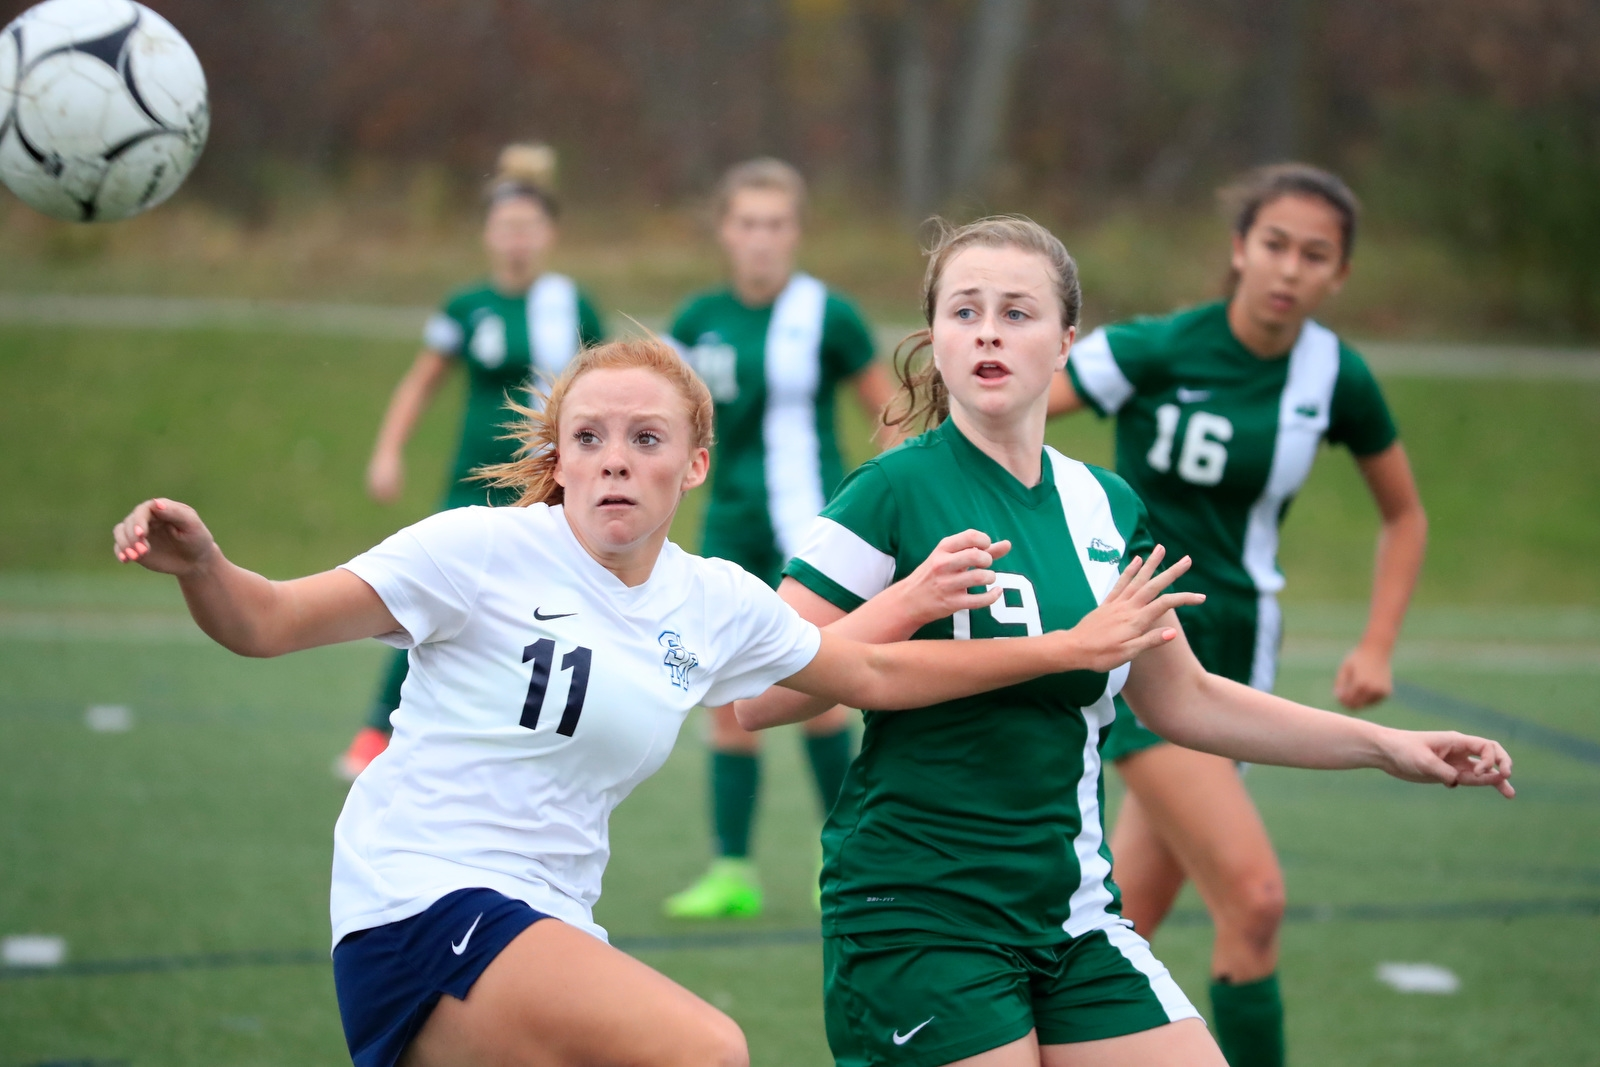 St. Mary's Skylr Baun and Nardin's Shannon Clough battle for a loose ball during first half action.